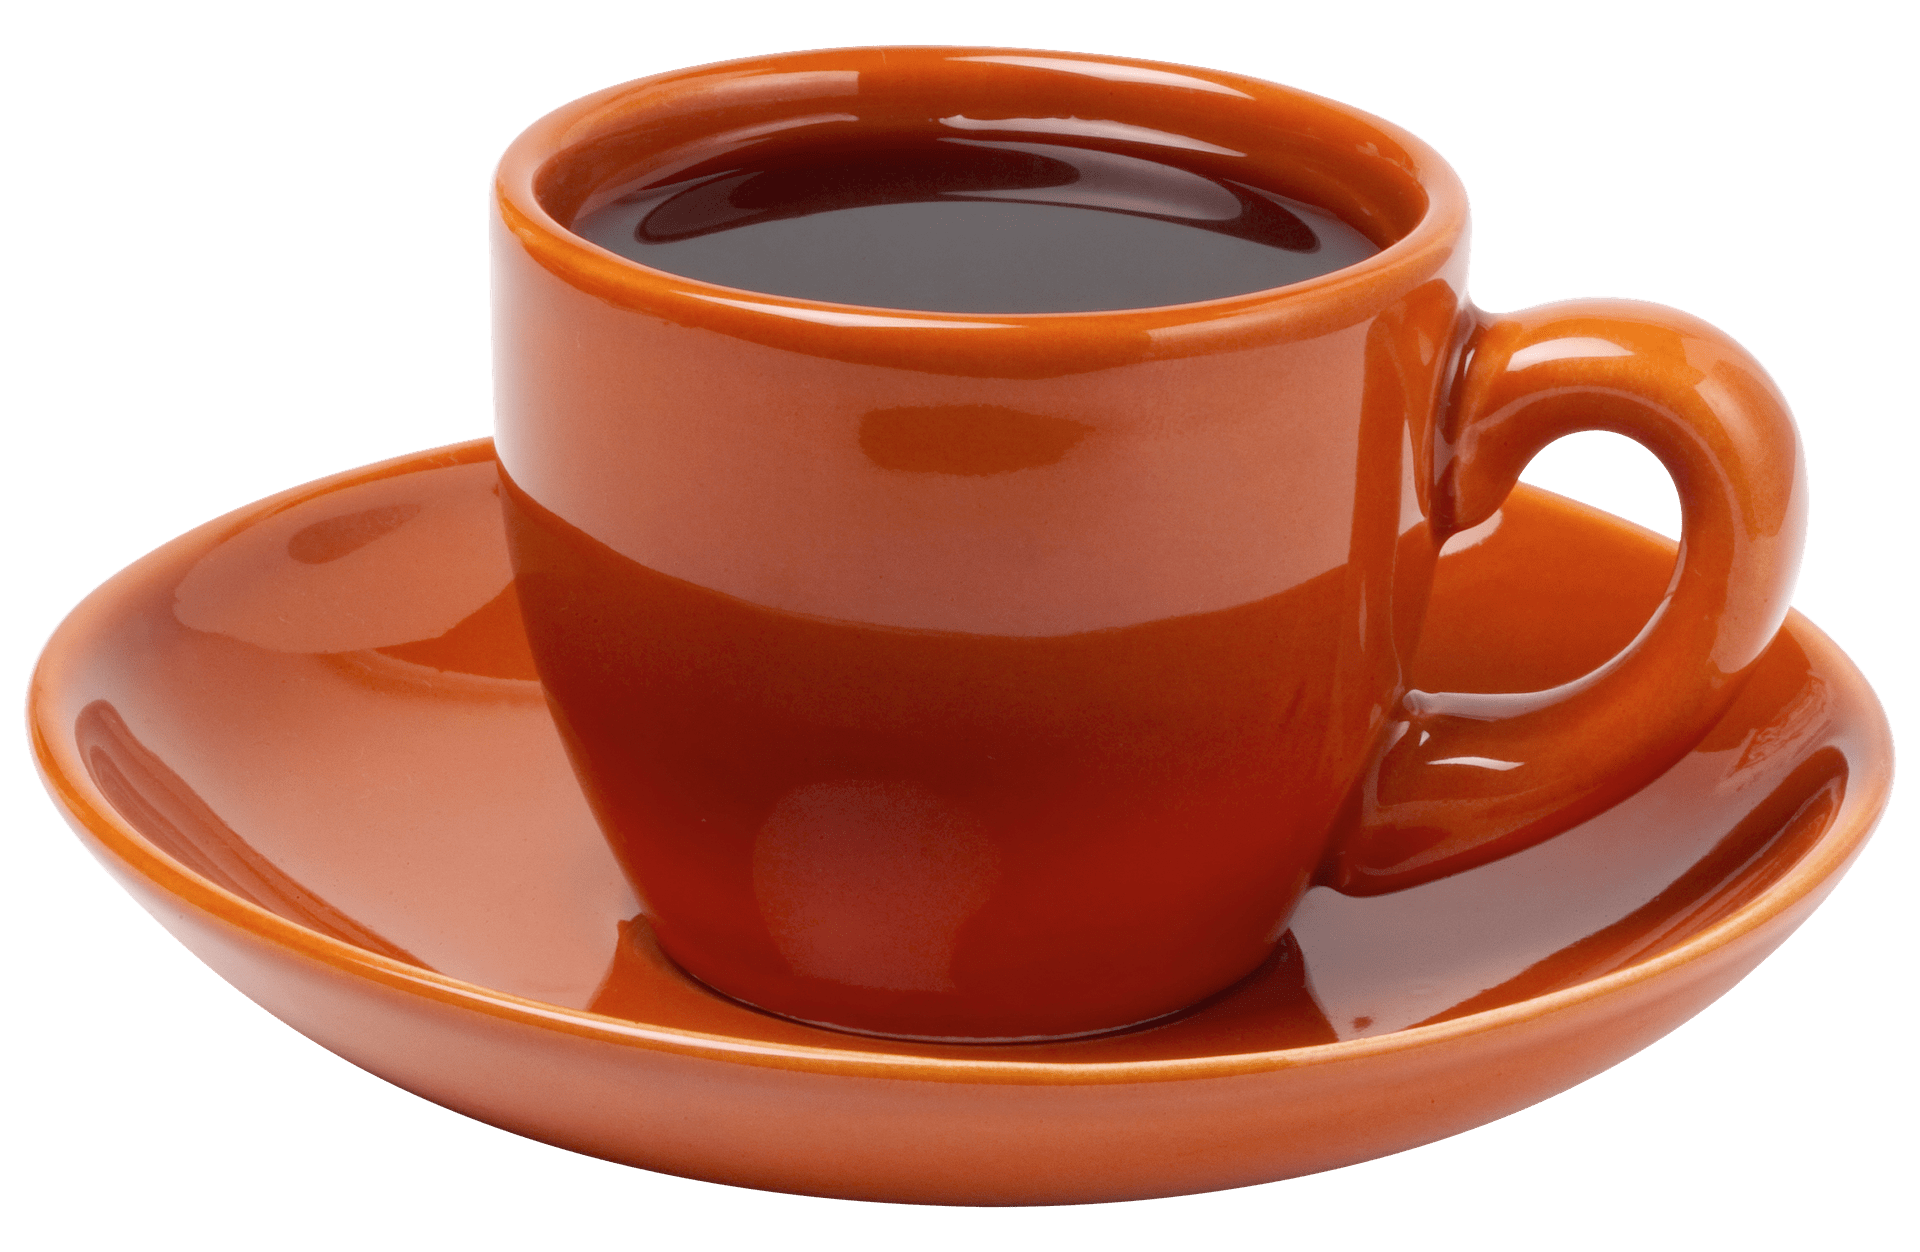 cup-4445228_1920